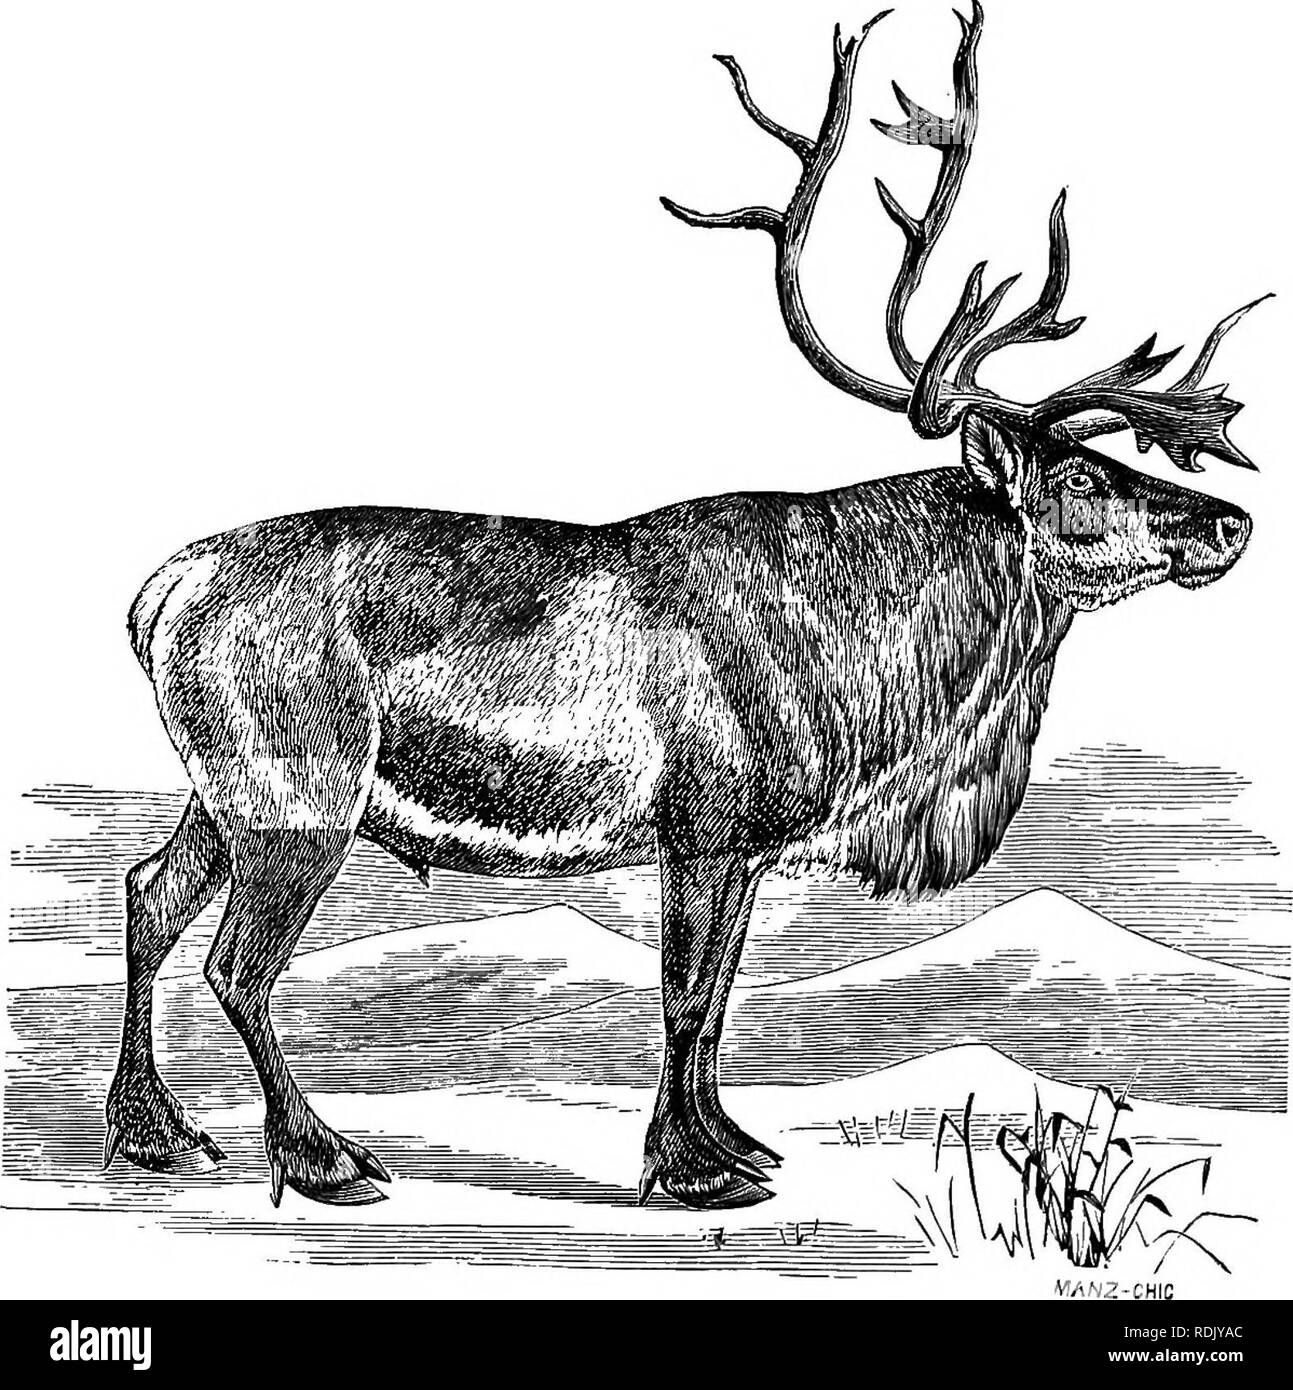 ". The antelope and deer of America : a comprehensive treatise upon the natural history, including the characteristics, habits, affinities, and capacity for domestication of the Antilocapra and Cervidae of North America . Pronghorn; Deer; Mammals. CONGENERS. 329 improvement in size may be met among the wild specimens in that far eastern country. The difference in size, therefore be"" tween the eastern and the western varieties is no^ univeri! but of EuUpe """" "" """"^'""' ""^*' *^°^^ °^ *^« ^-tt In form, also there is an appreciable difference between the Americ - Stock Image"